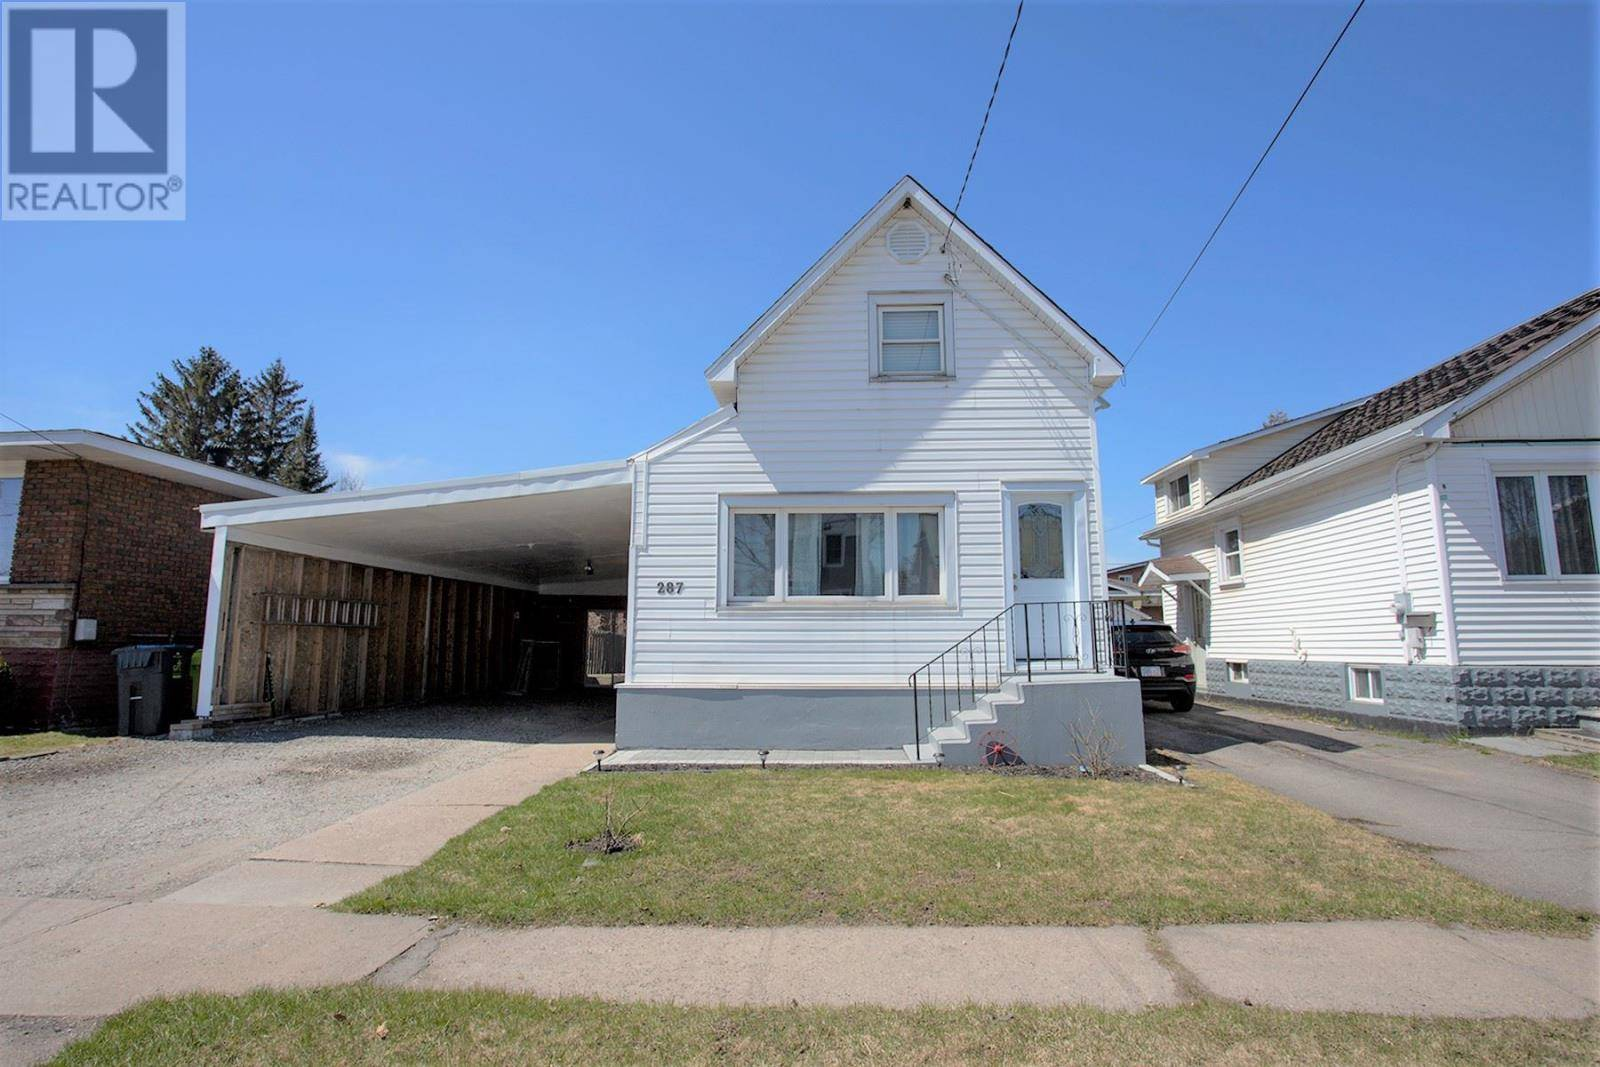 House for sale at 287 First Ave Sault Ste. Marie Ontario - MLS: SM128384